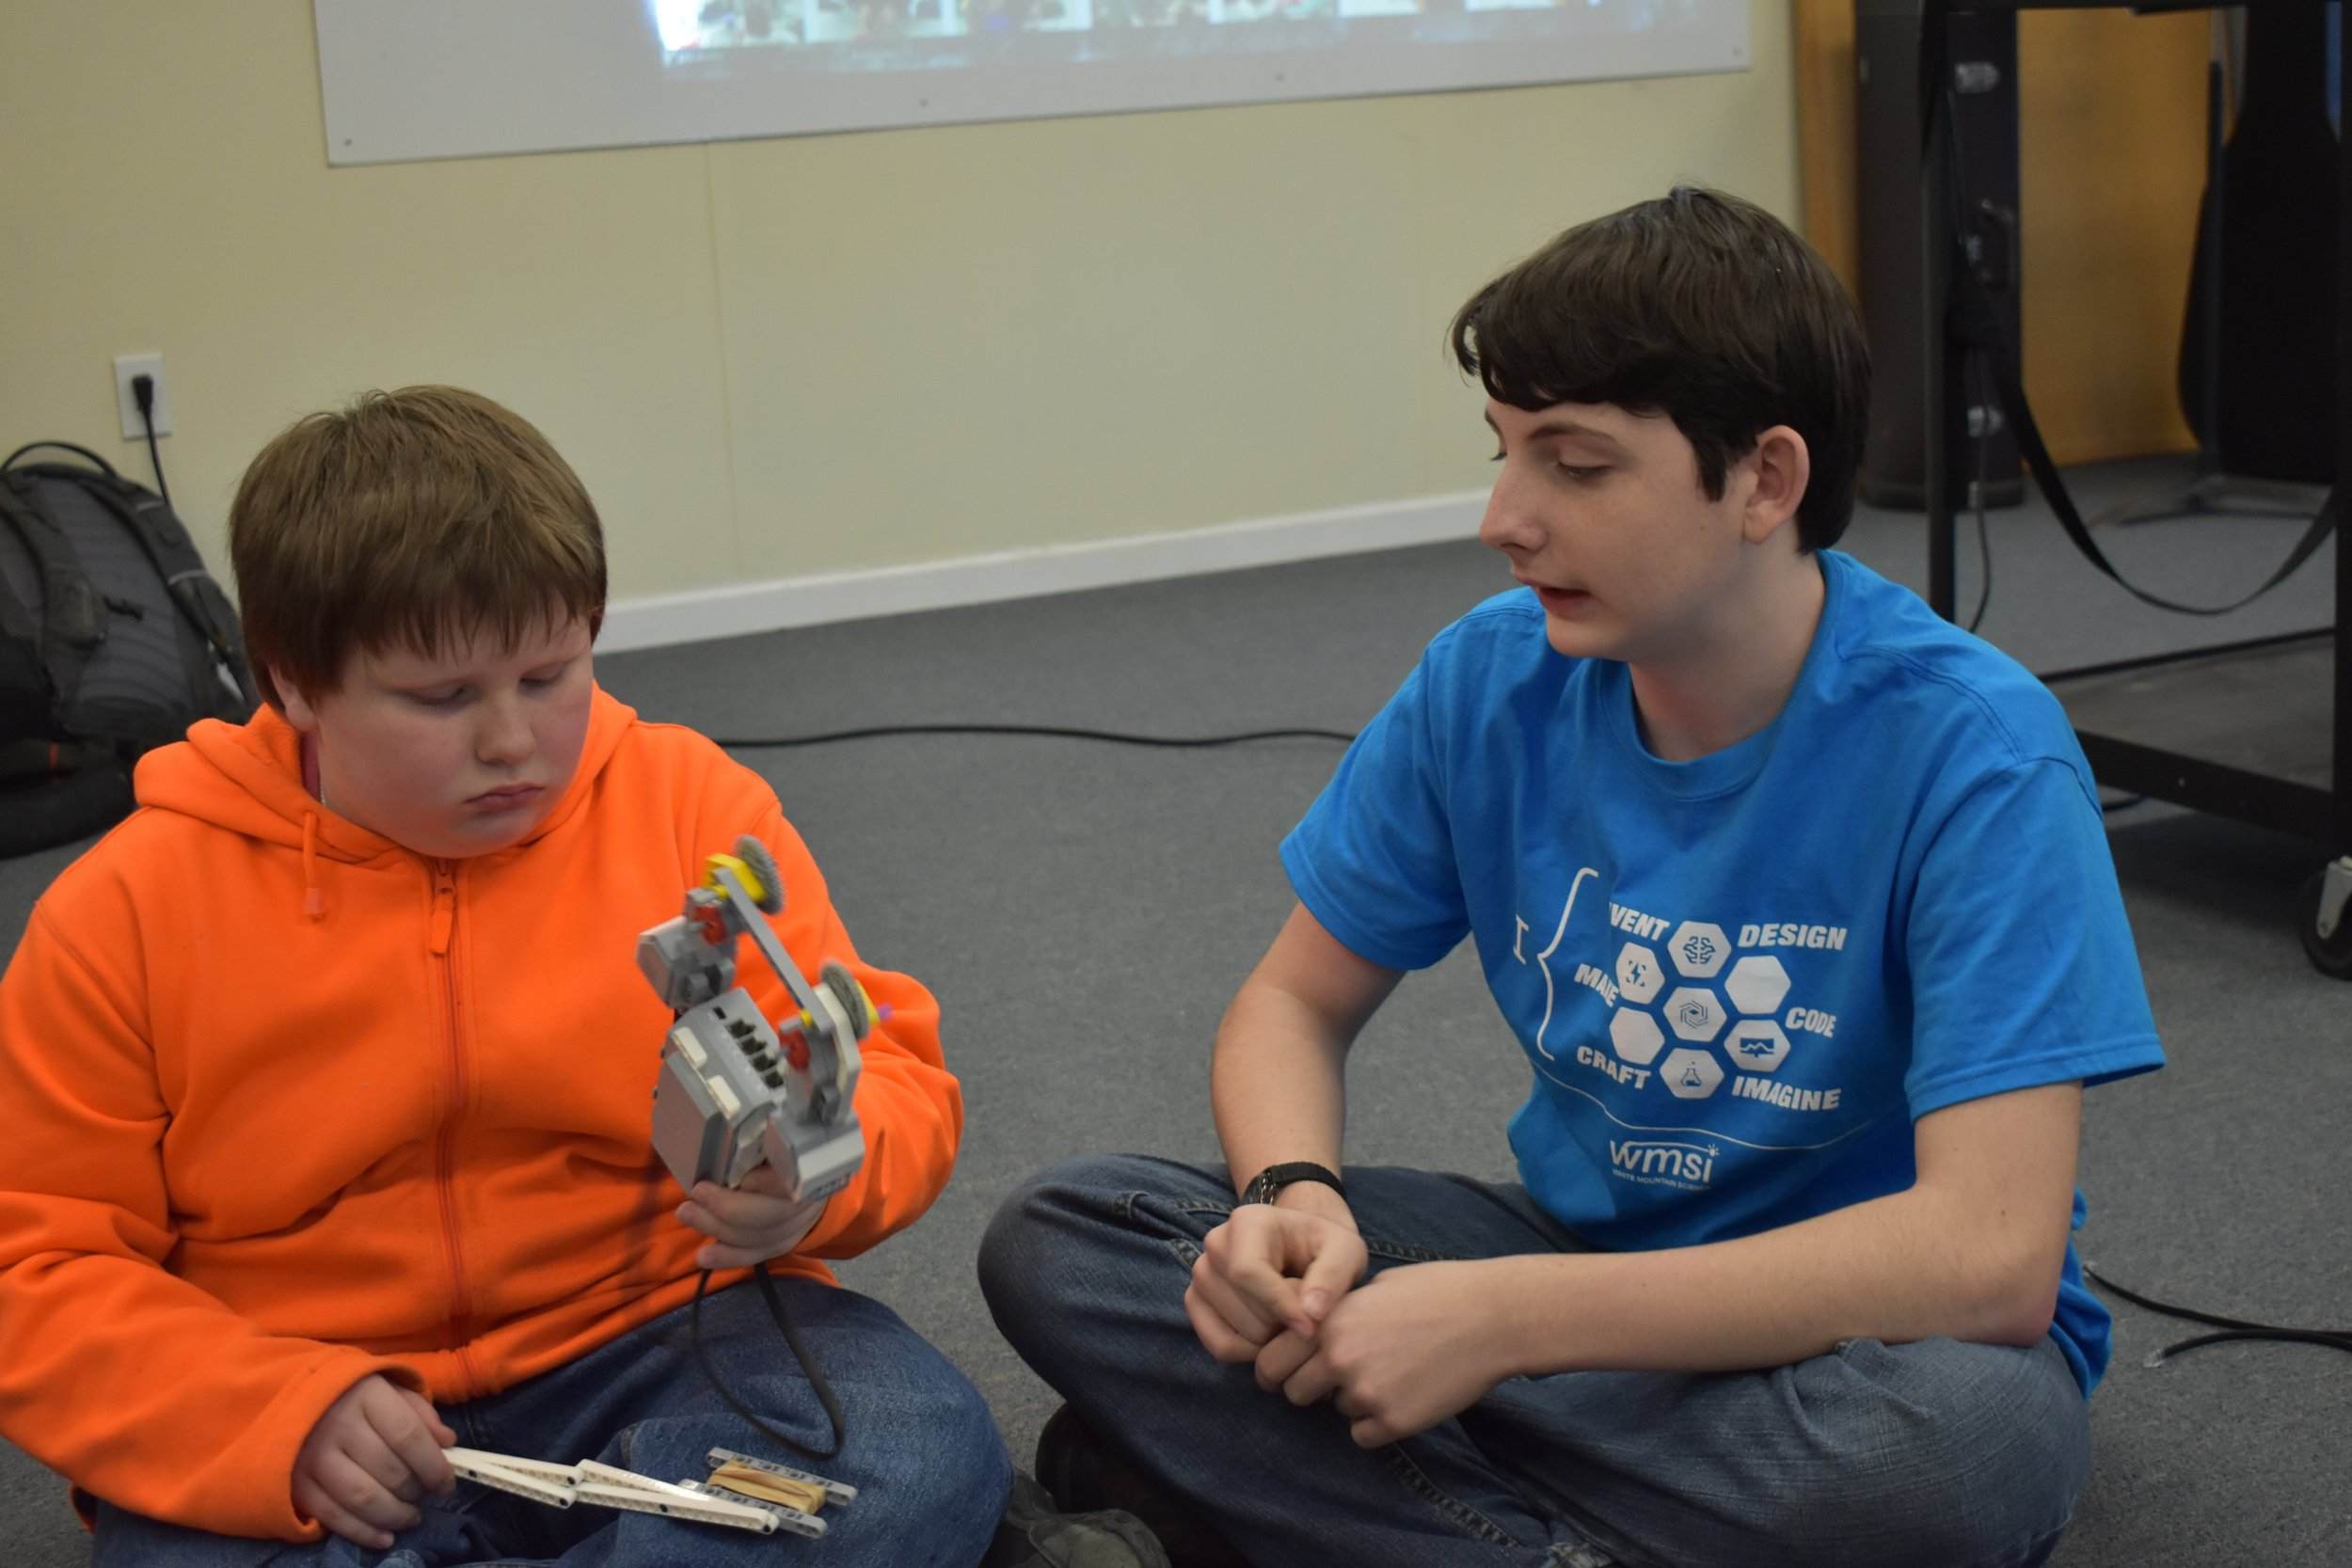 Discussing the finer points of gear systems and robotic artistry